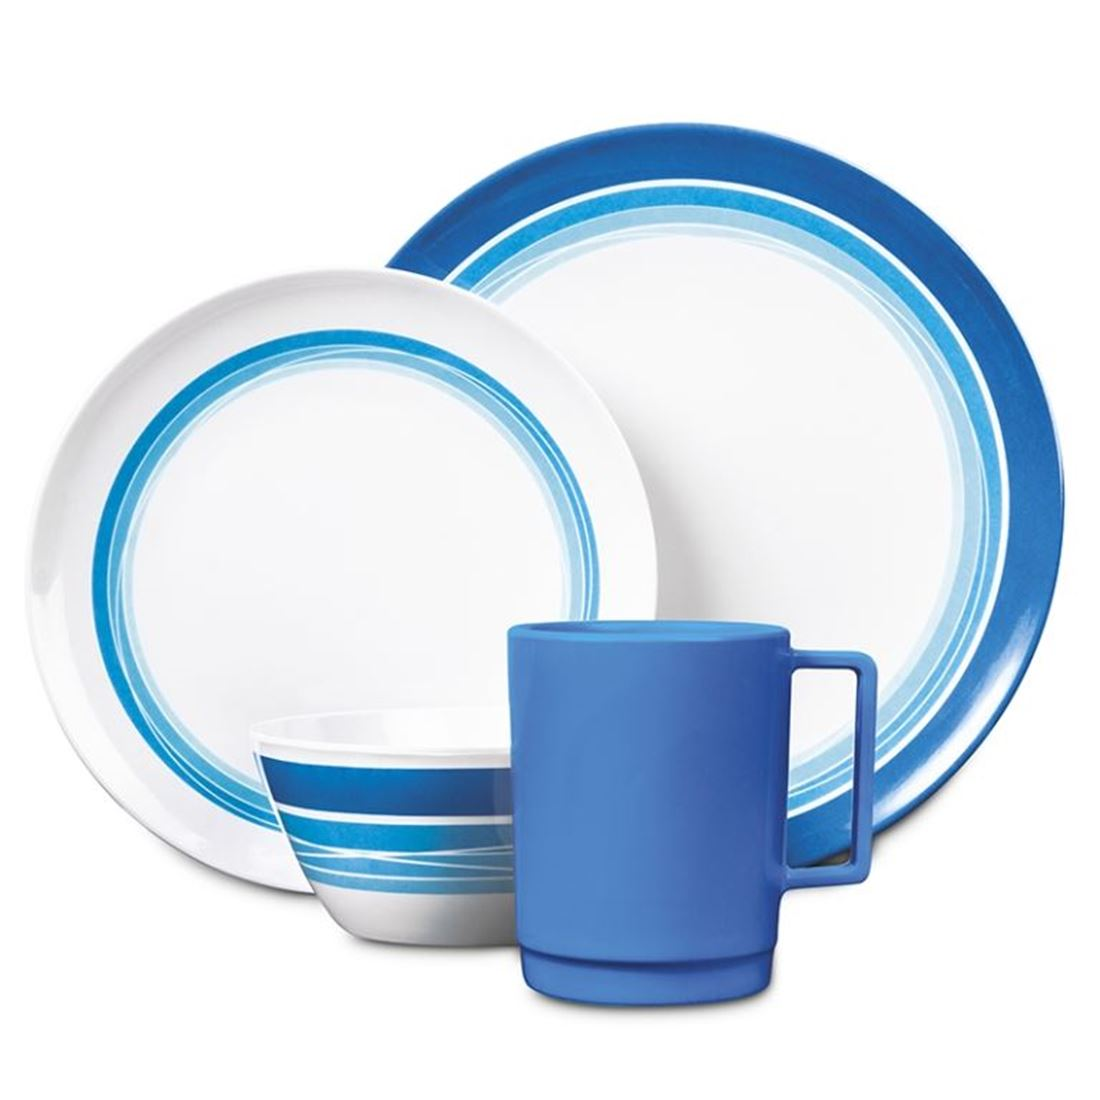 Picture of Campfire 16pc Melamine Dinner Set - Ocean Blue